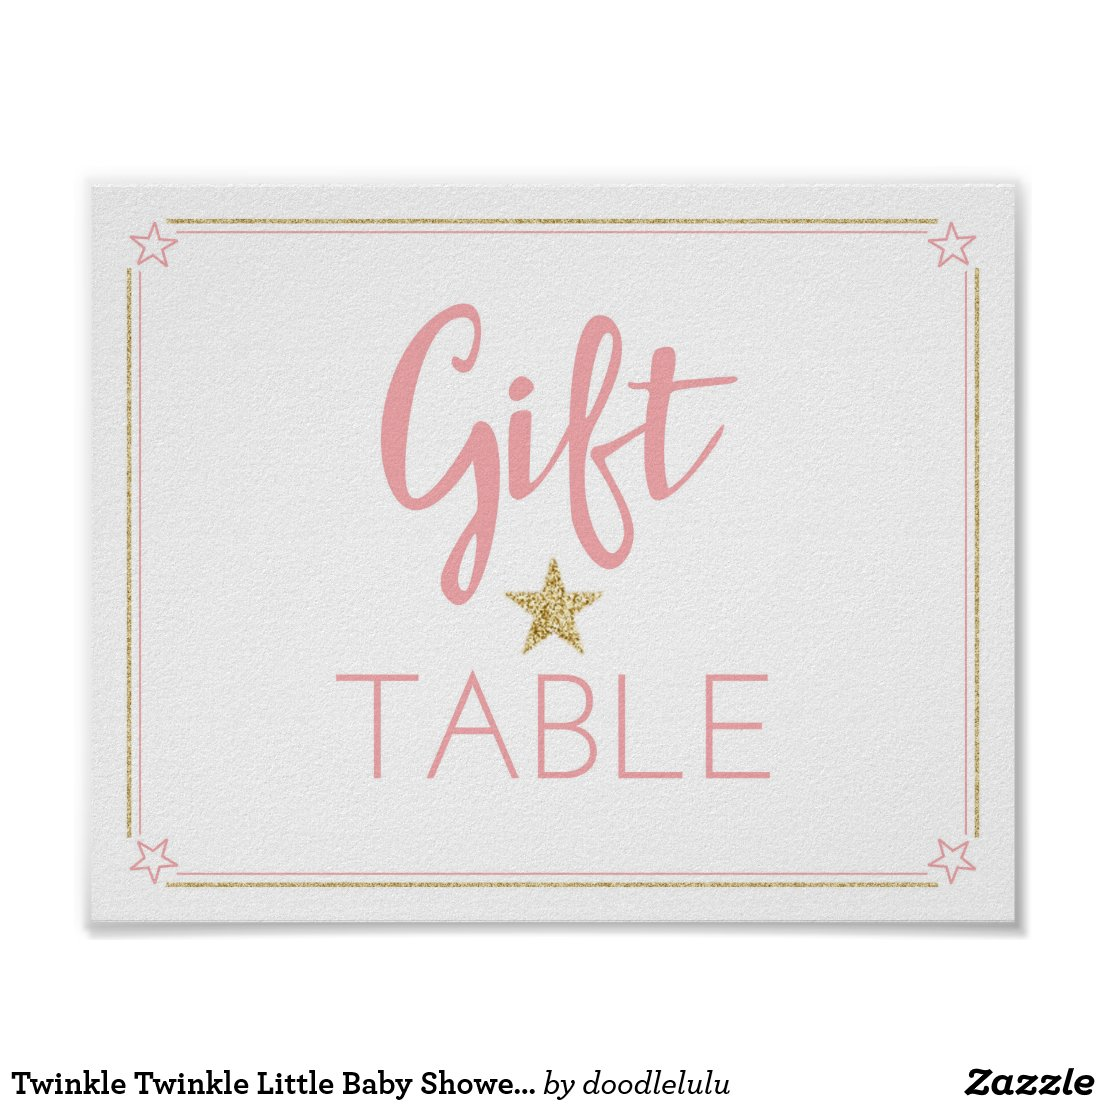 Twinkle Twinkle Little Baby Shower Gift Table sign